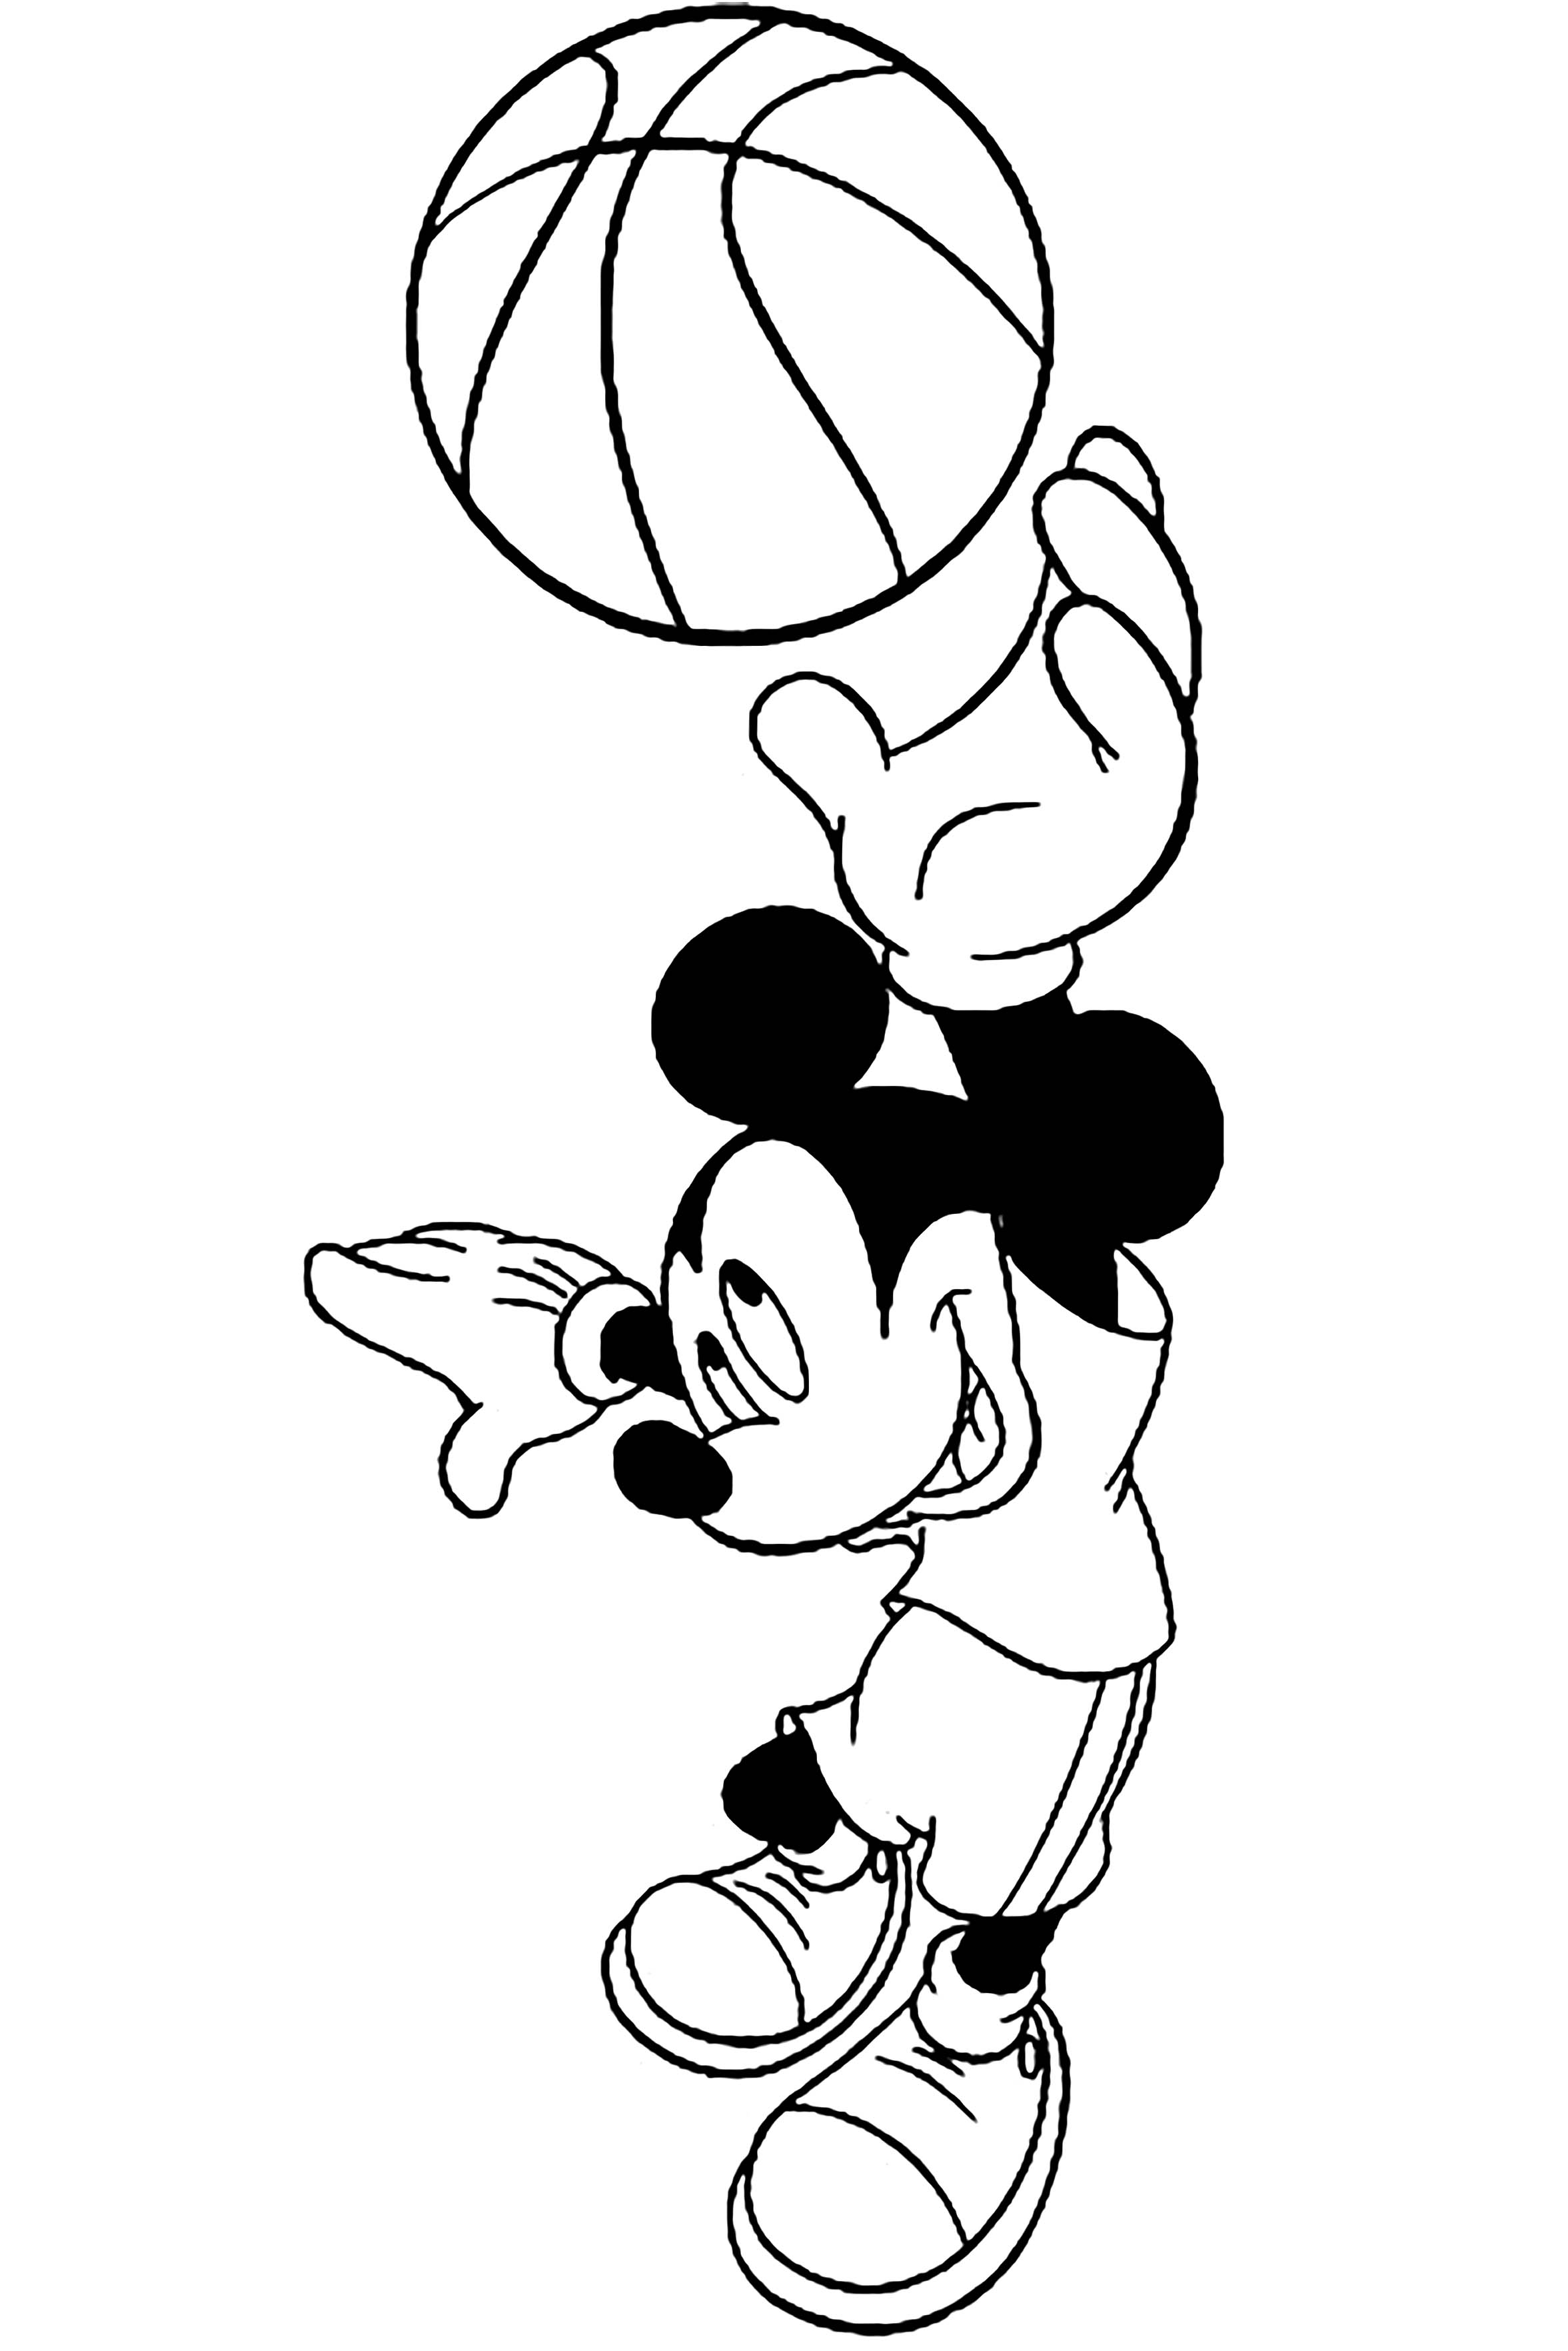 Simple free Basketball coloring page to print and color